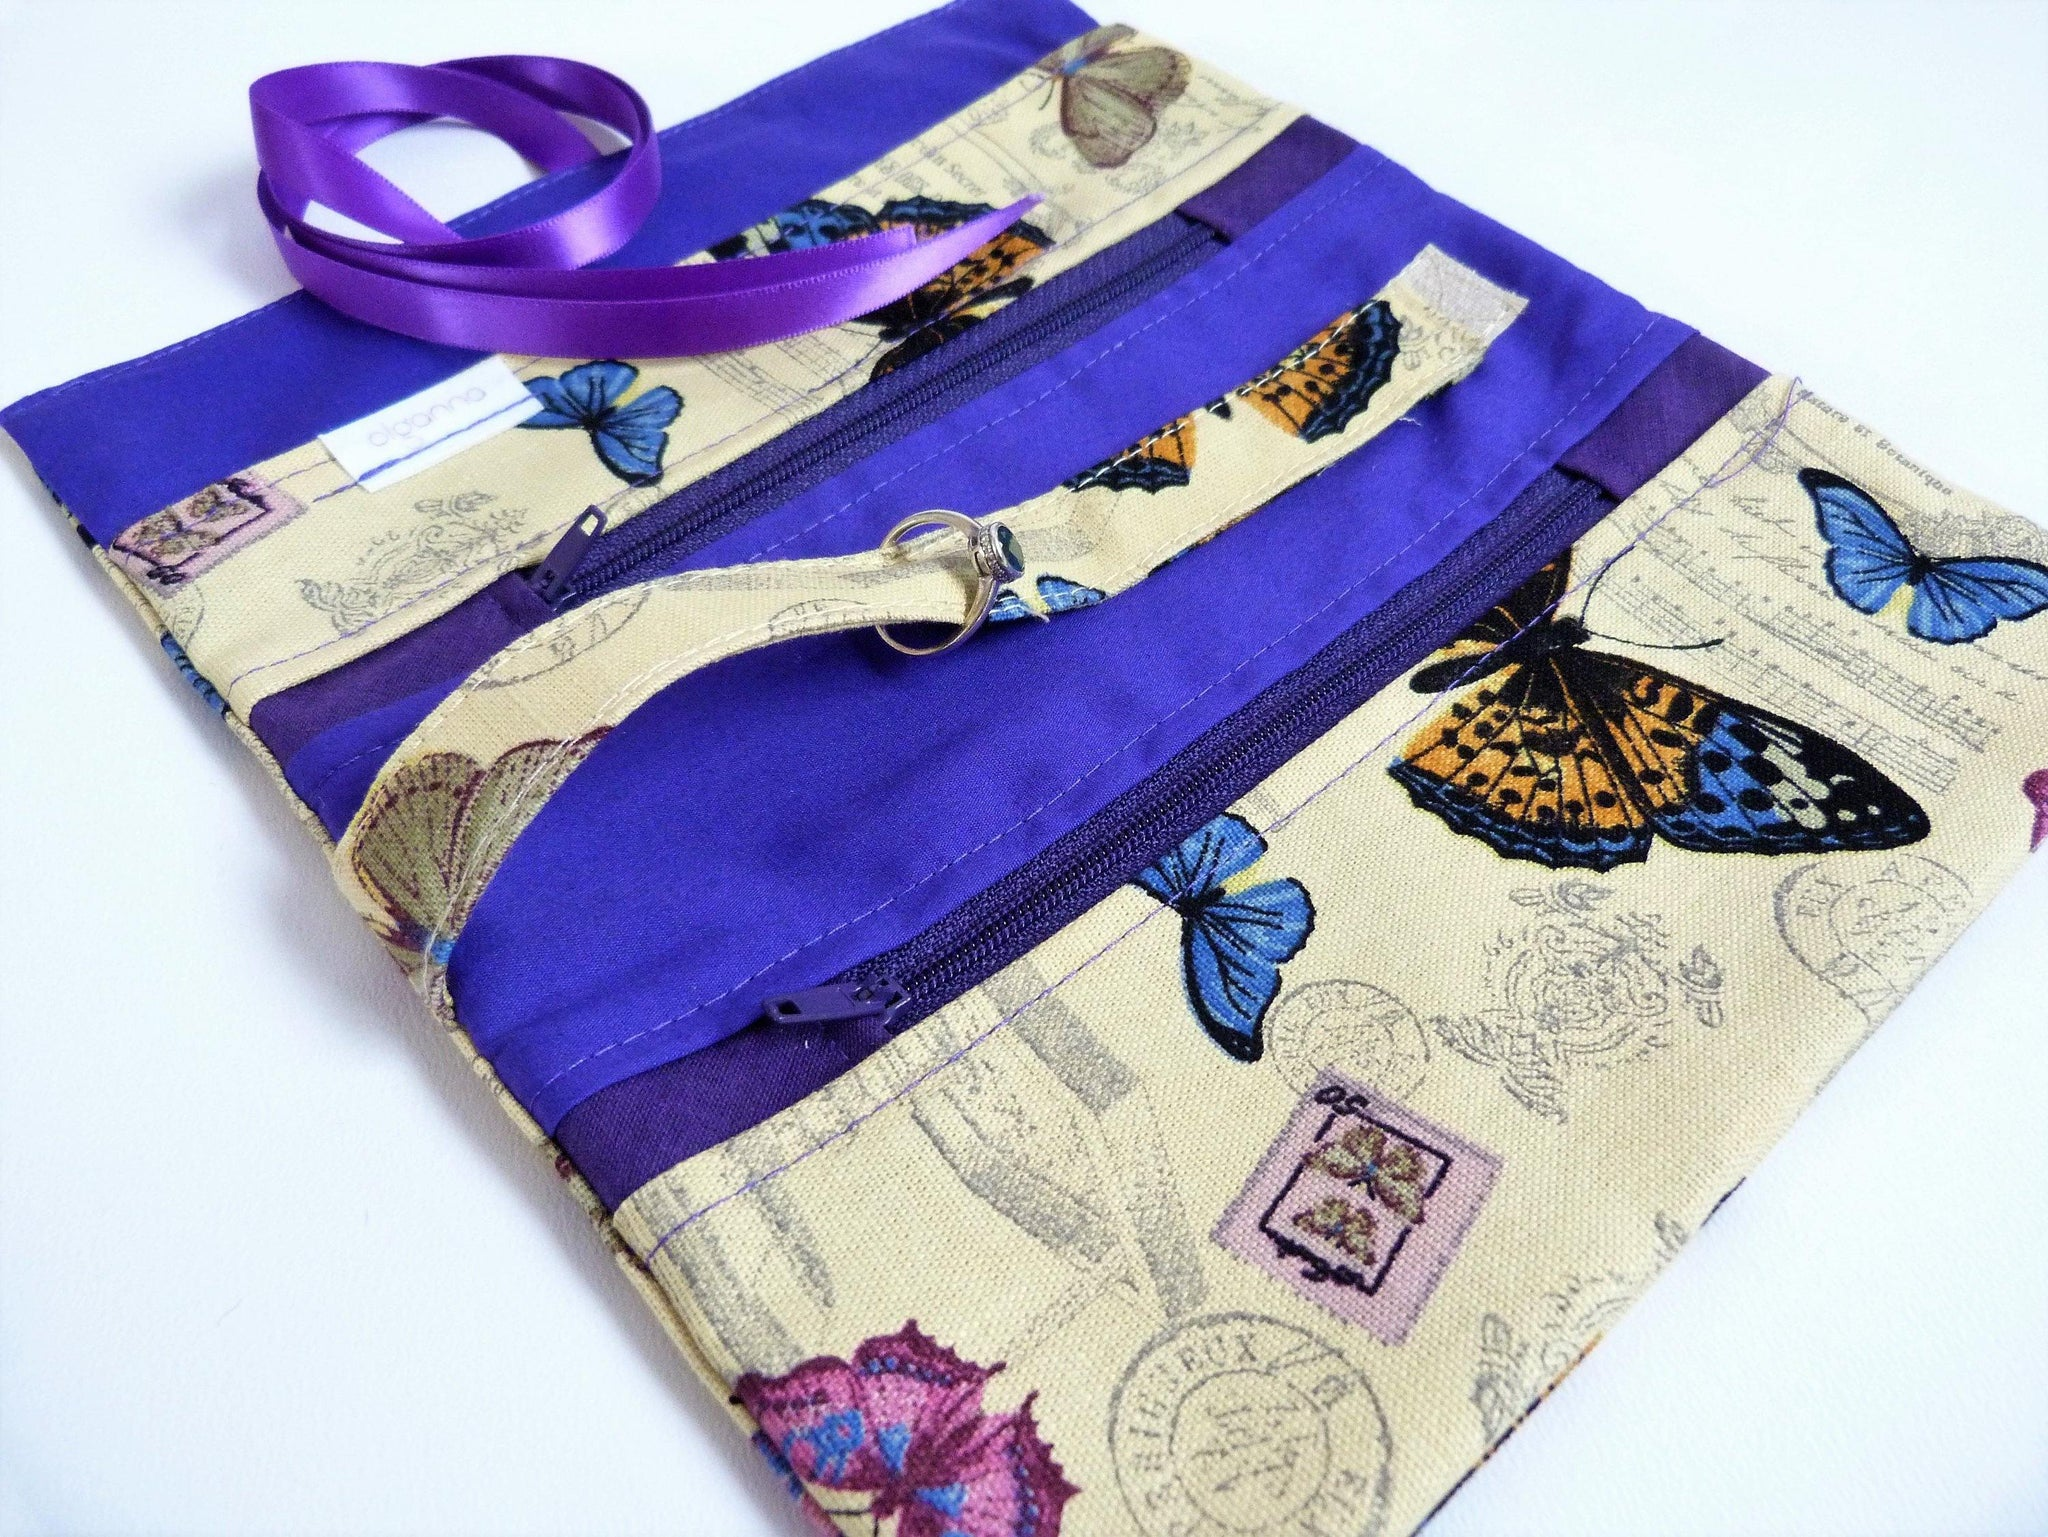 Make Up Gift set, Jewelry Roll and Make Up Wrap